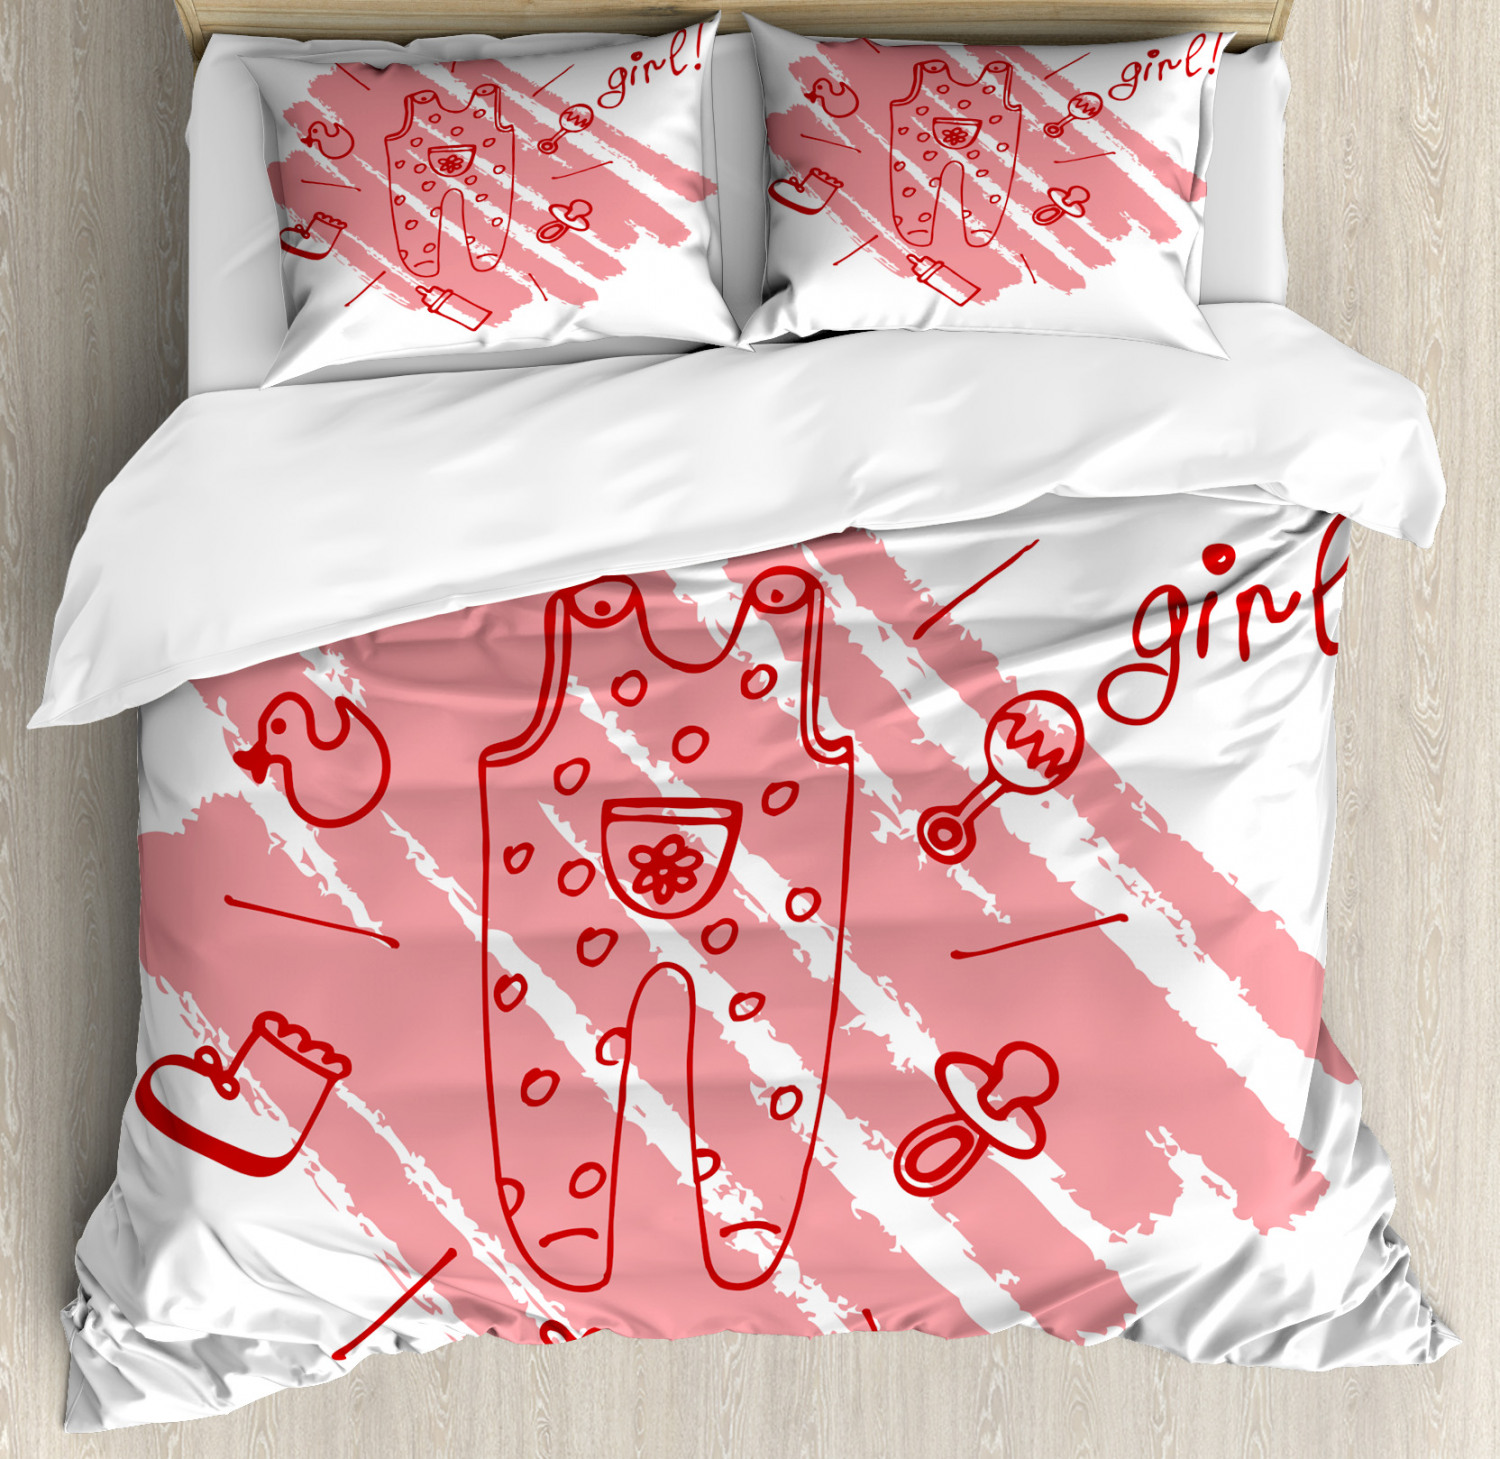 Red Duvet Cover Set with Pillow Shams Baby Girl Pacifier Print